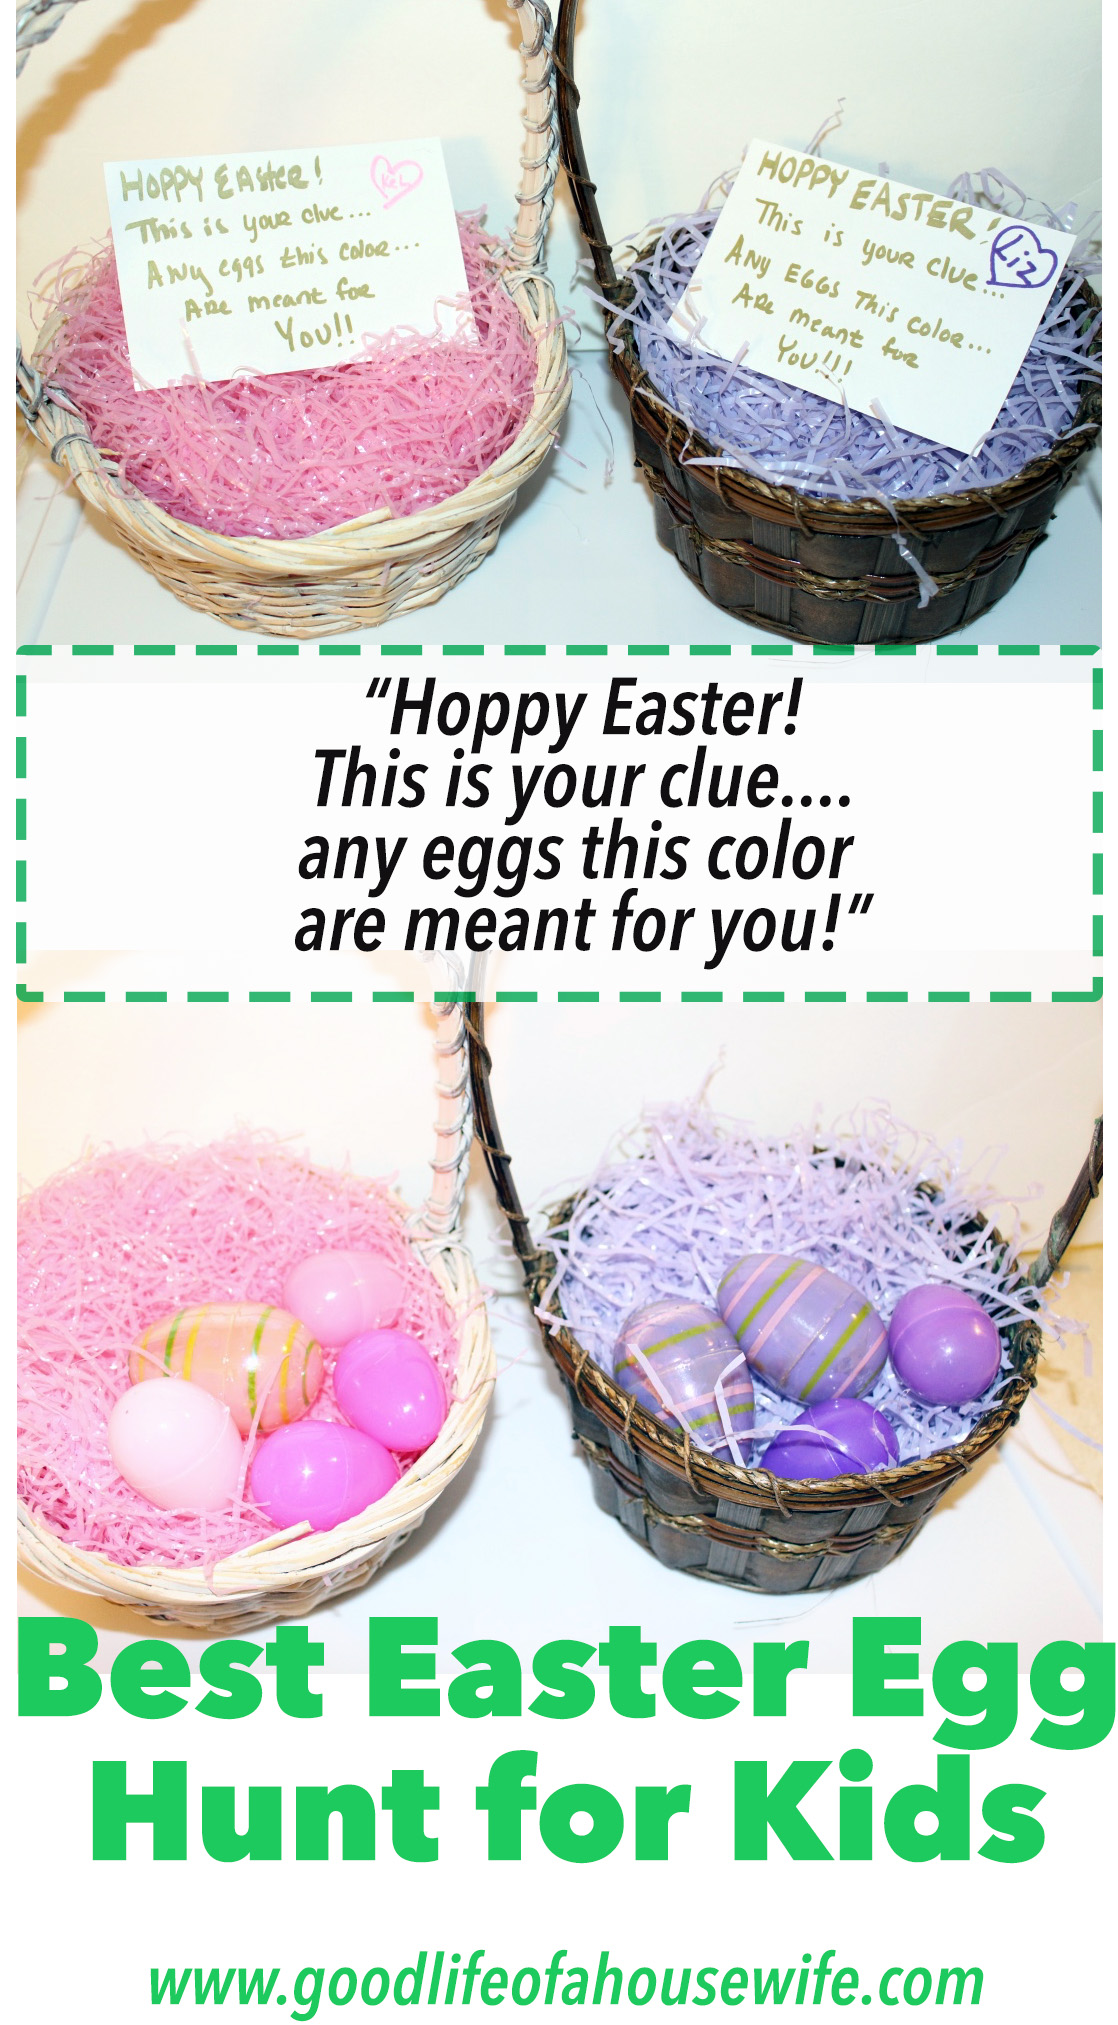 Best Easter Egg Hunt for Kids | Good Life of a Housewife | www.goodlifeofahousewife.com